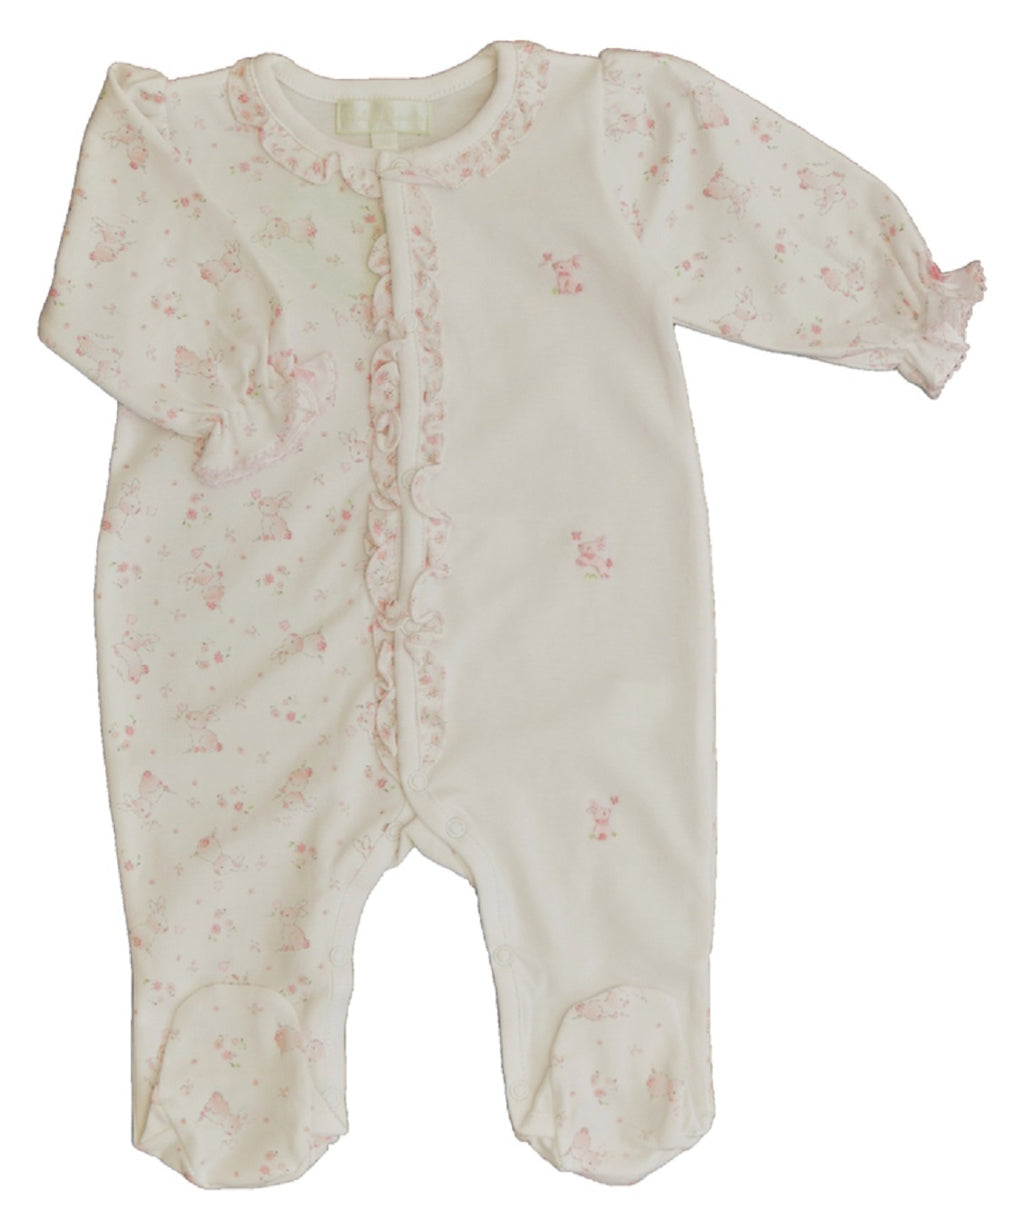 Baby Girl's Pink Bunny Footie - Little Threads Inc. Children's Clothing